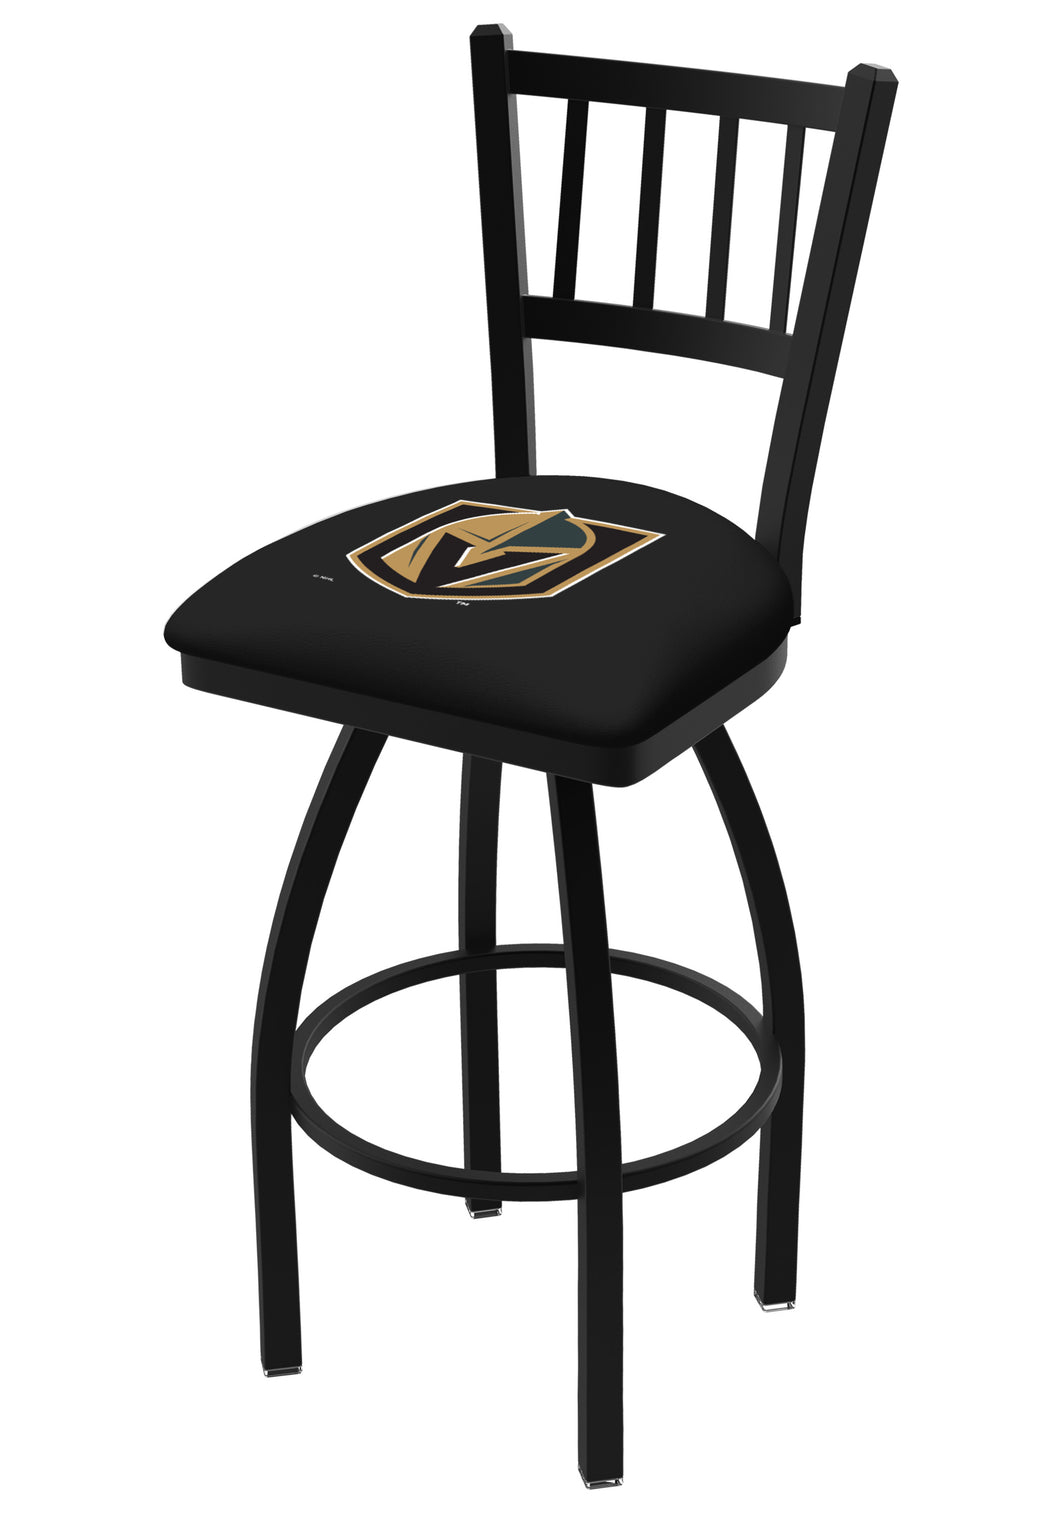 Holland Bar Stool,NHL,Bar Stool,L018,36